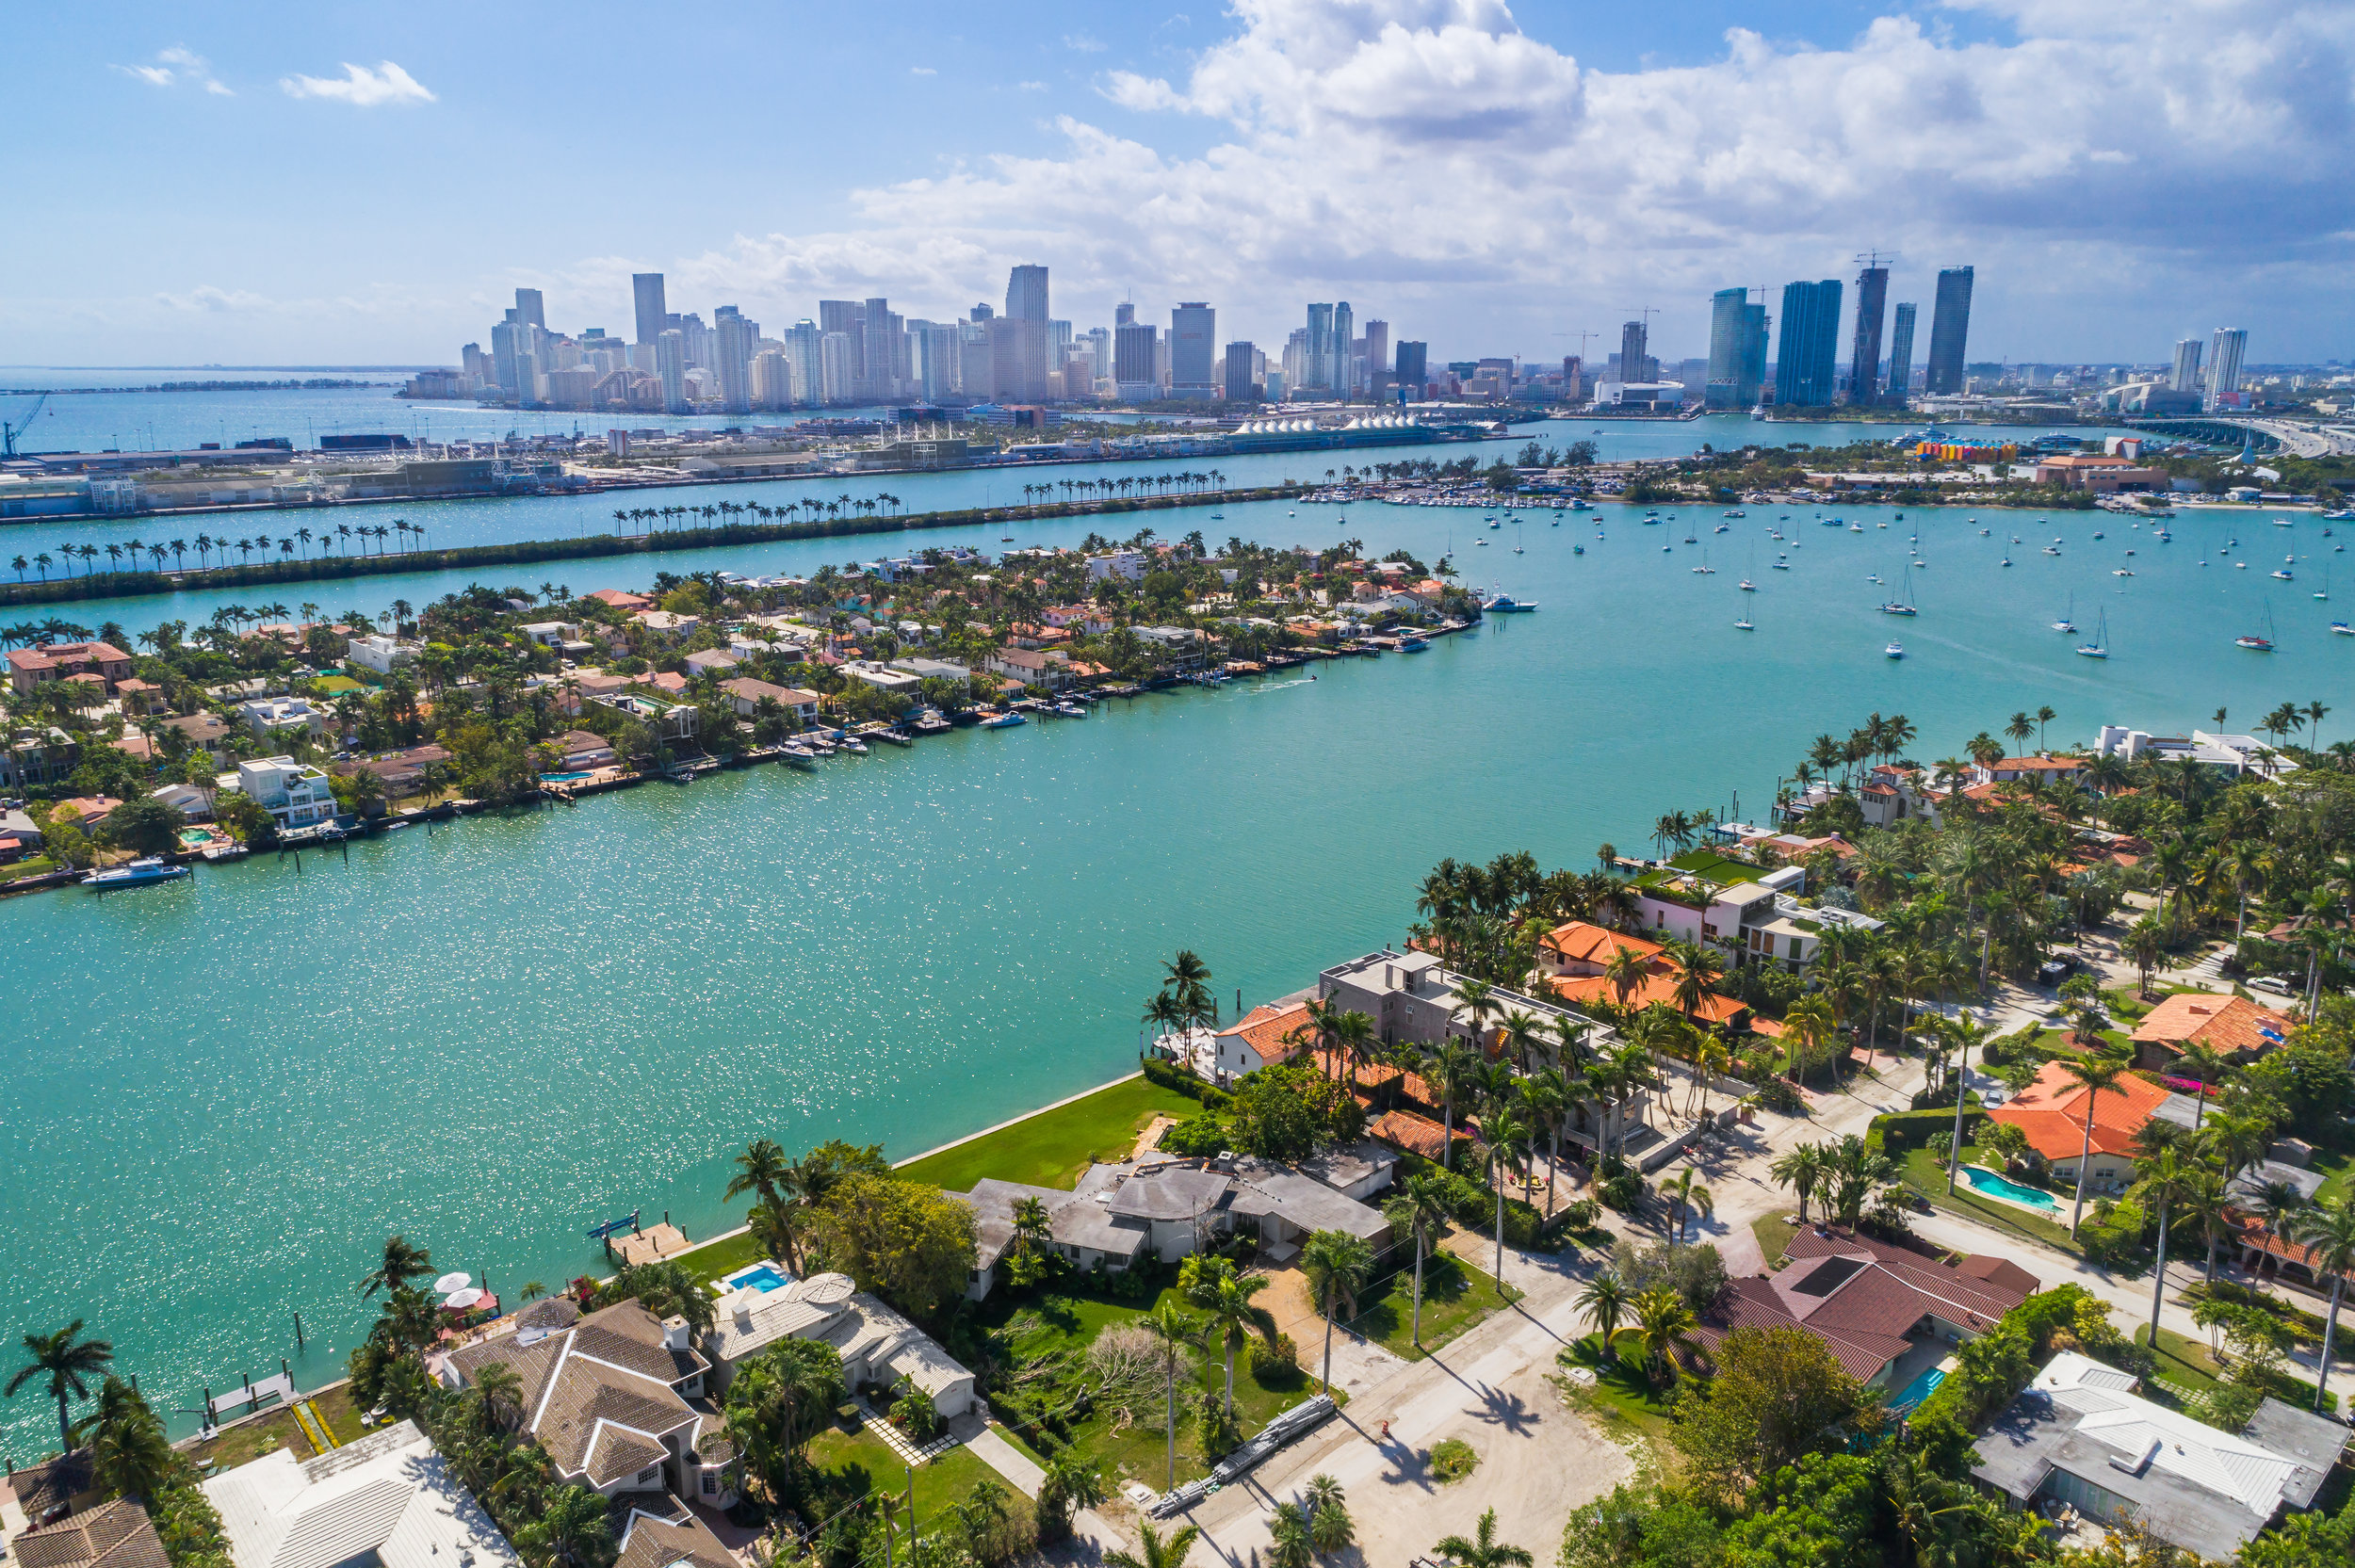 AirBNB Reports $204 Million Of Host Income In Miami-Dade In 2018, Up 52% Year-Over-Year